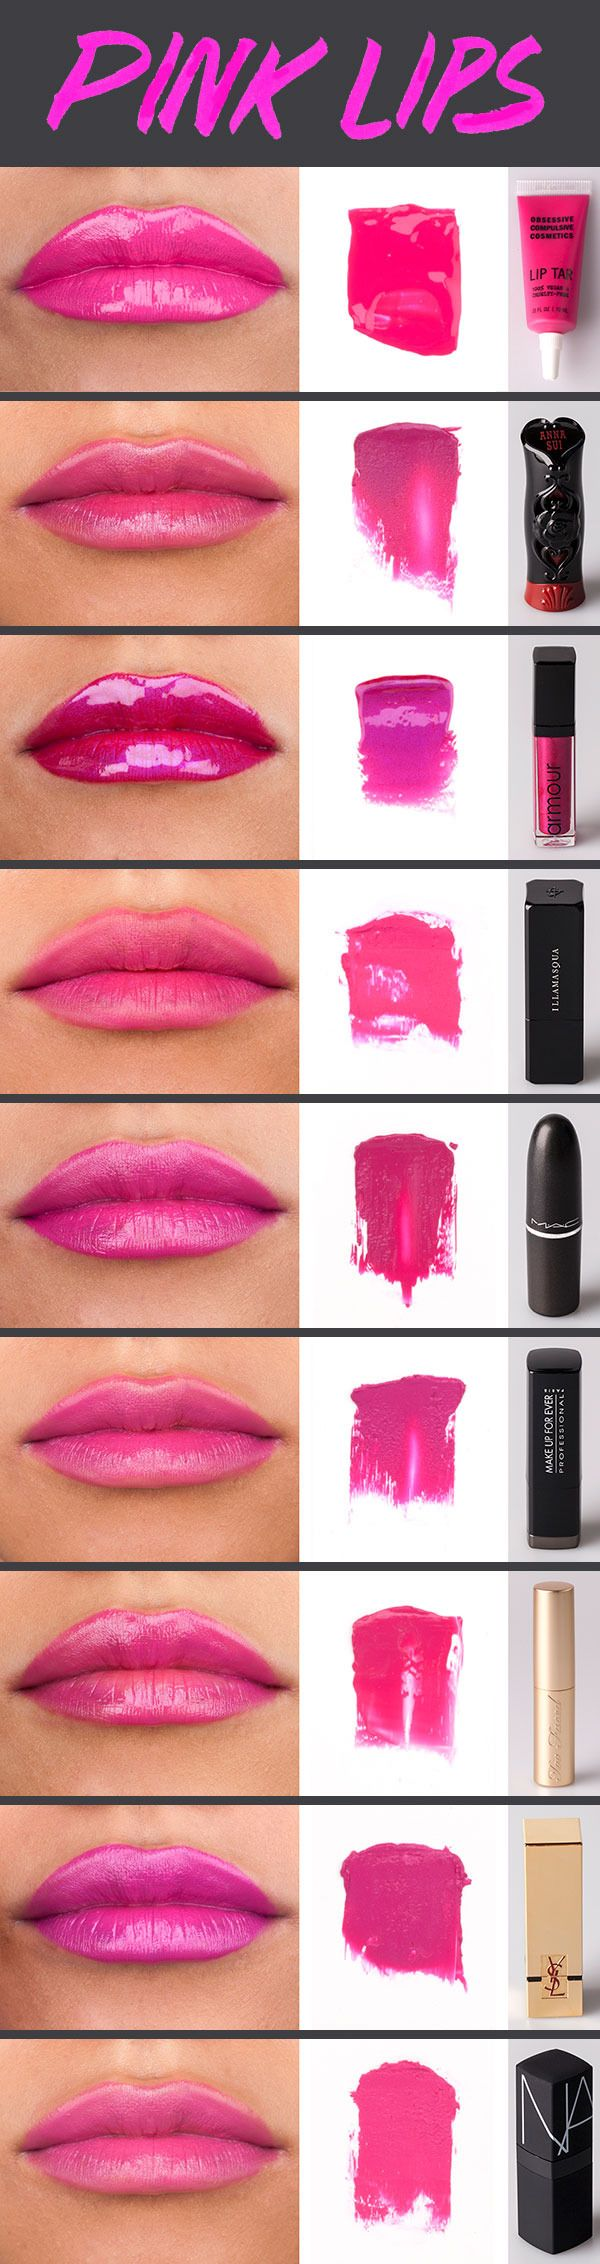 We Heart Fuchsia! The Fuchsia Lipstick Review